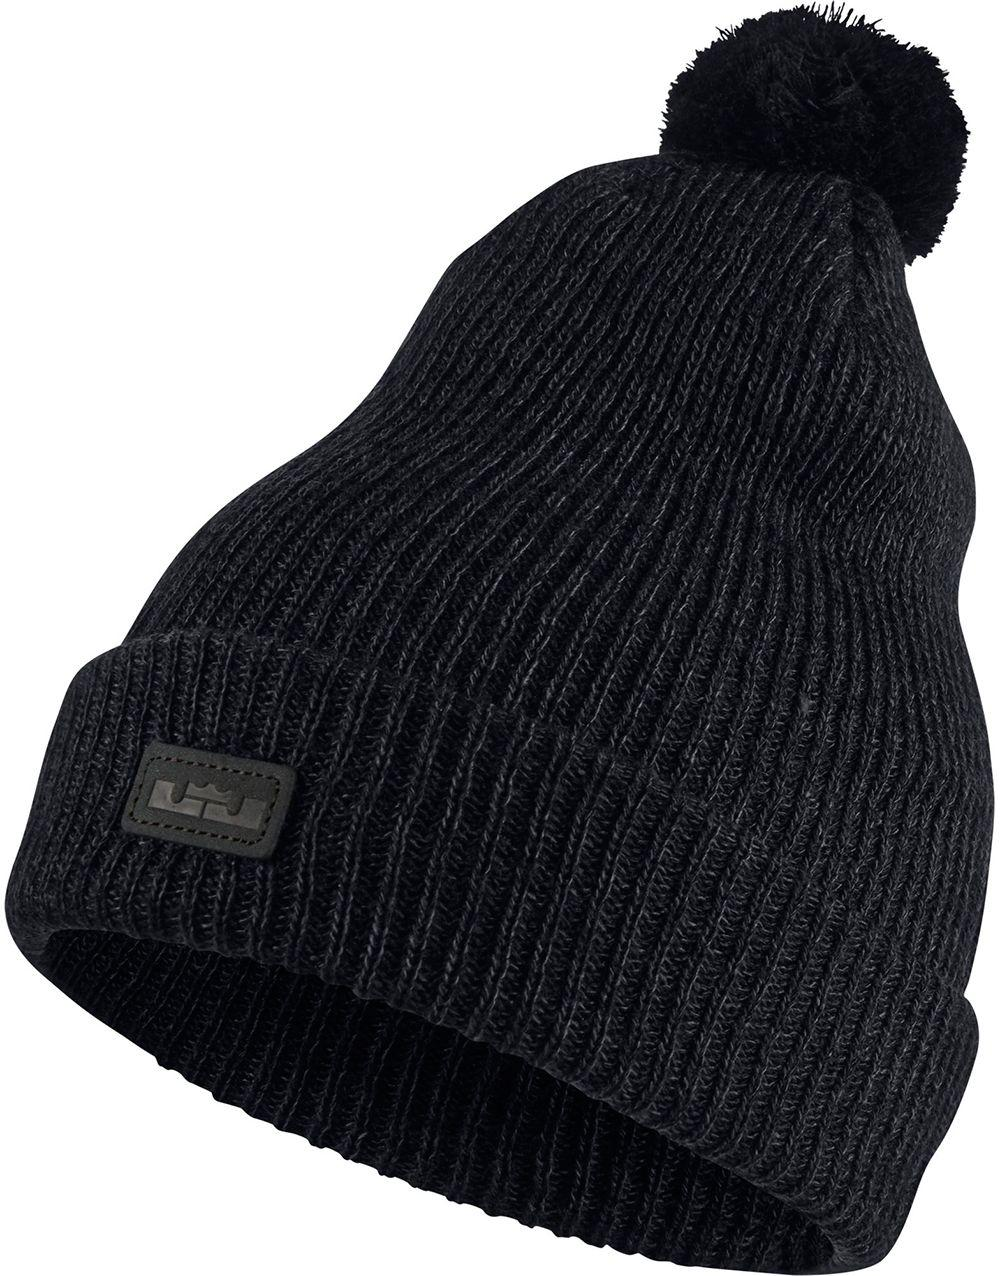 8ae64c71c6c1a Nike Lebron Xii Knit Hat in Black for Men - Lyst